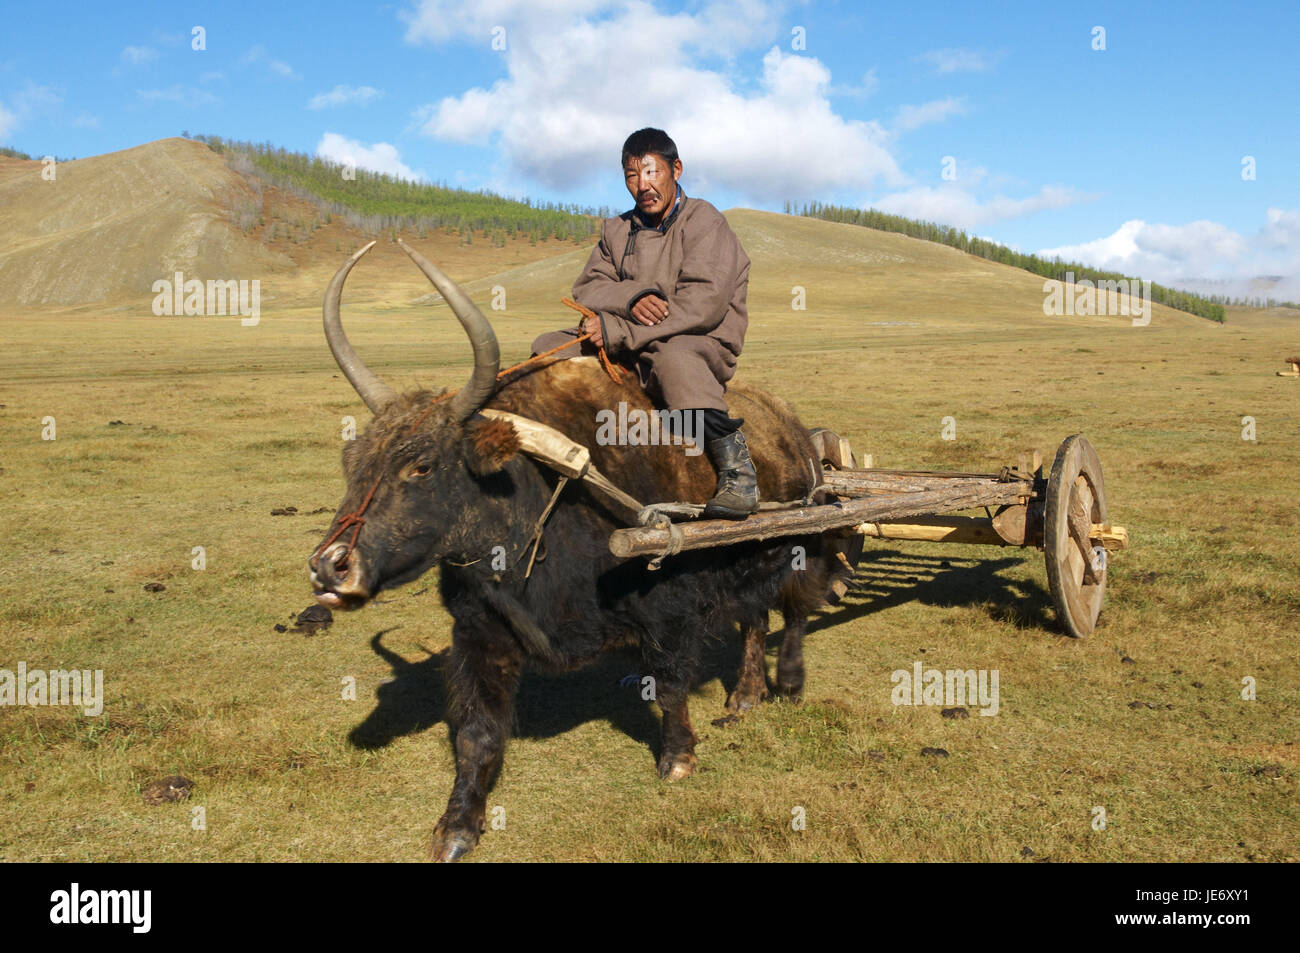 Mongolia, Central Asia, Arkhangai province, nomad, man on his yak, carriage, drag, Stock Photo